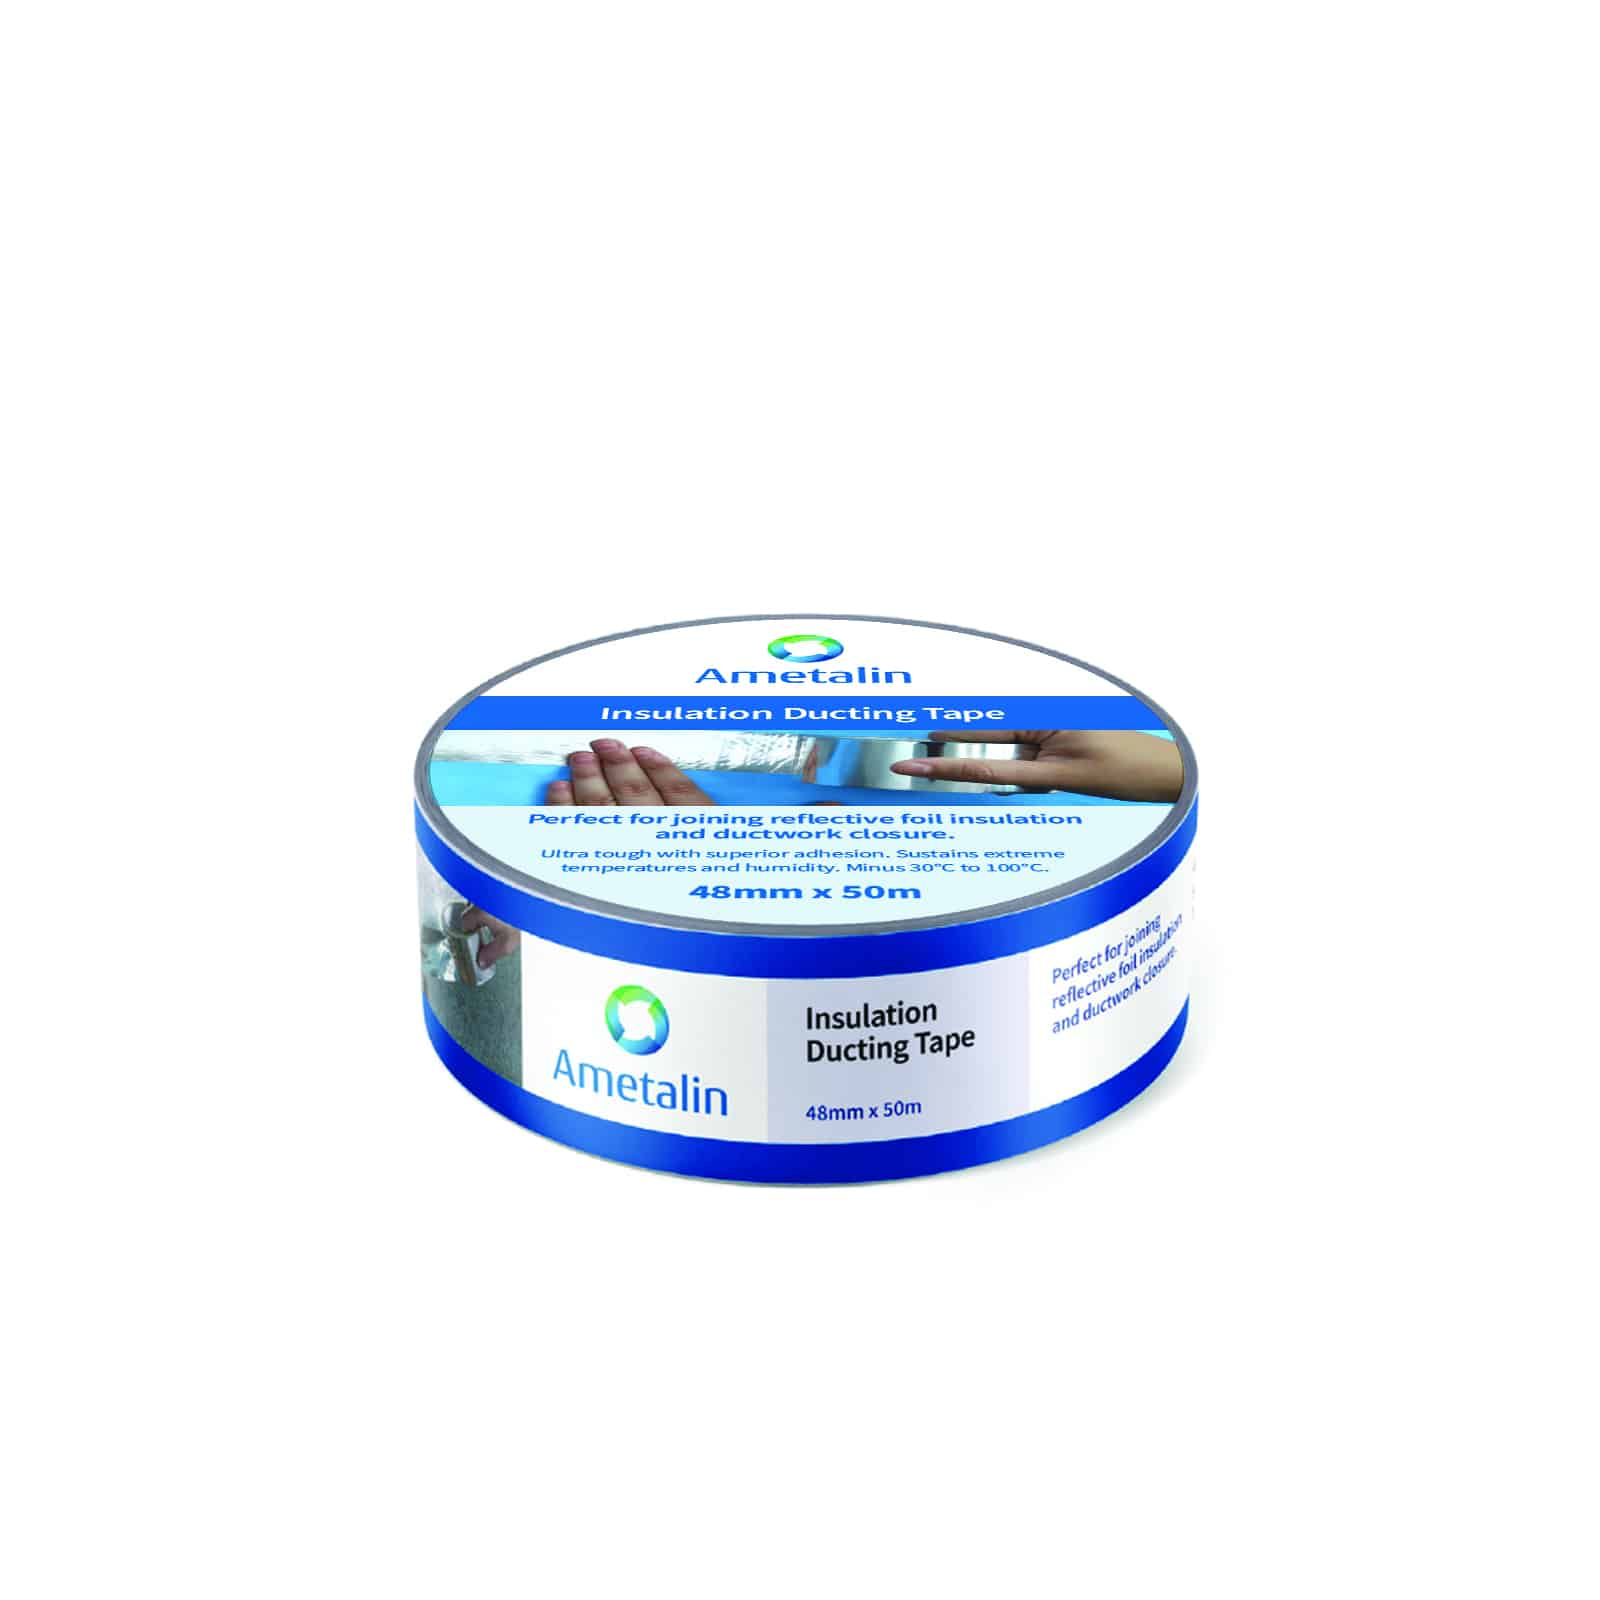 Insulation/Ducting Tape